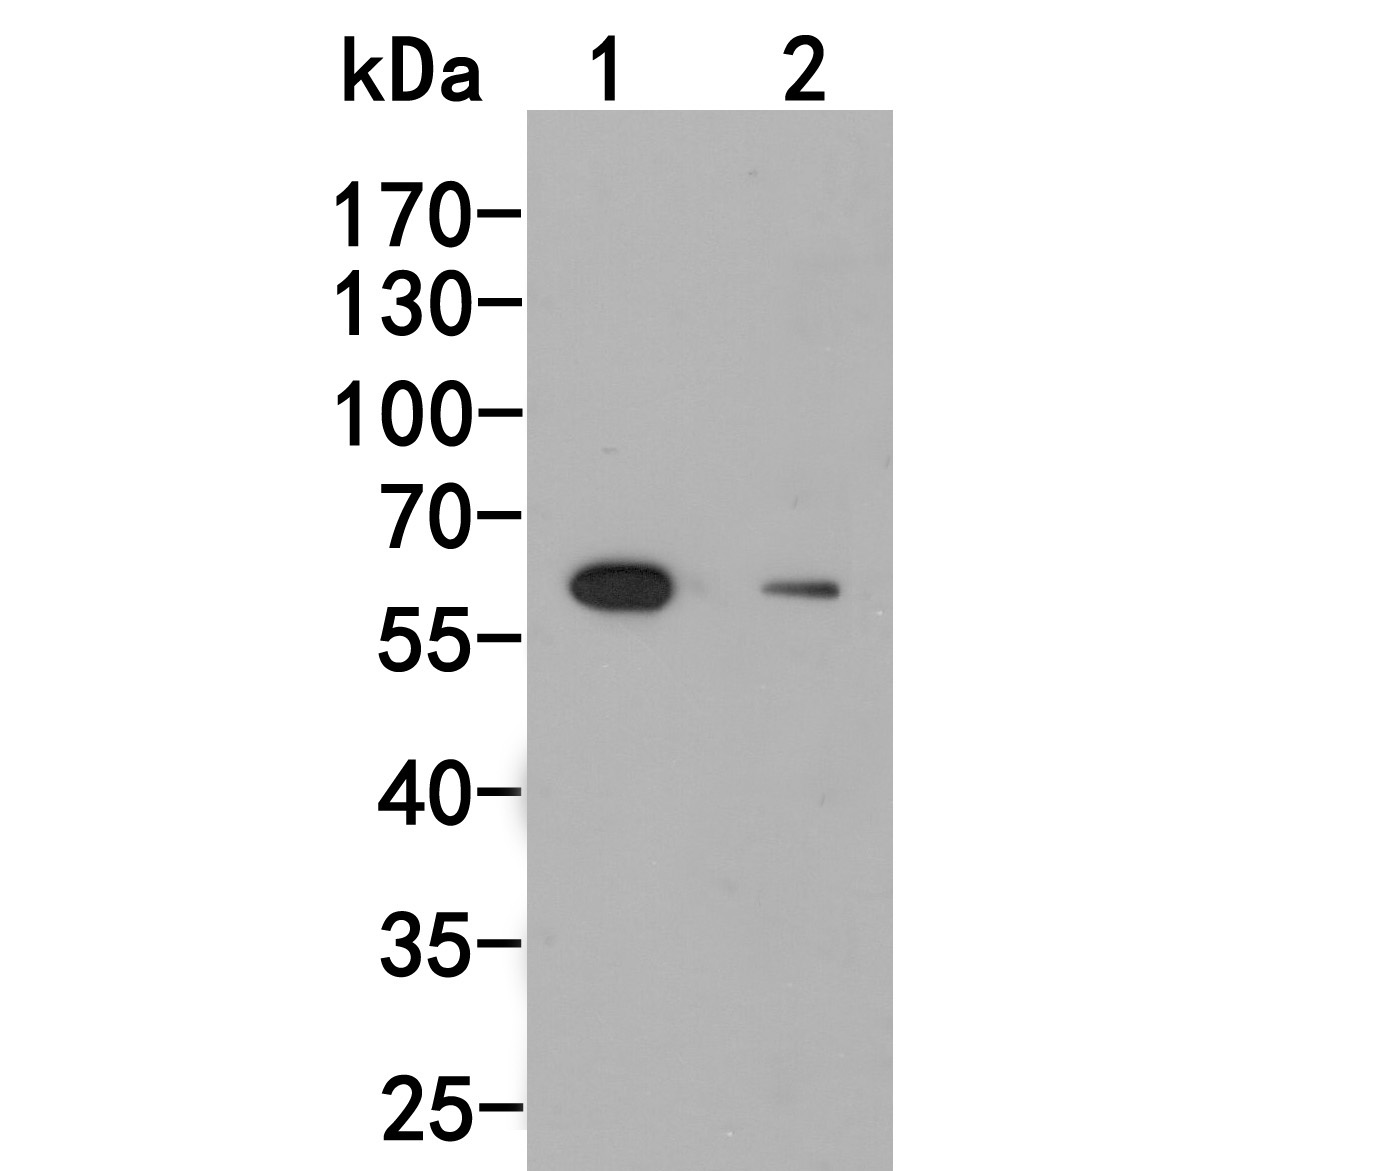 Western blot analysis of UAP1 on Jurkat cell lysate using anti-UAP1 antibody at 1/500 dilution.<br />